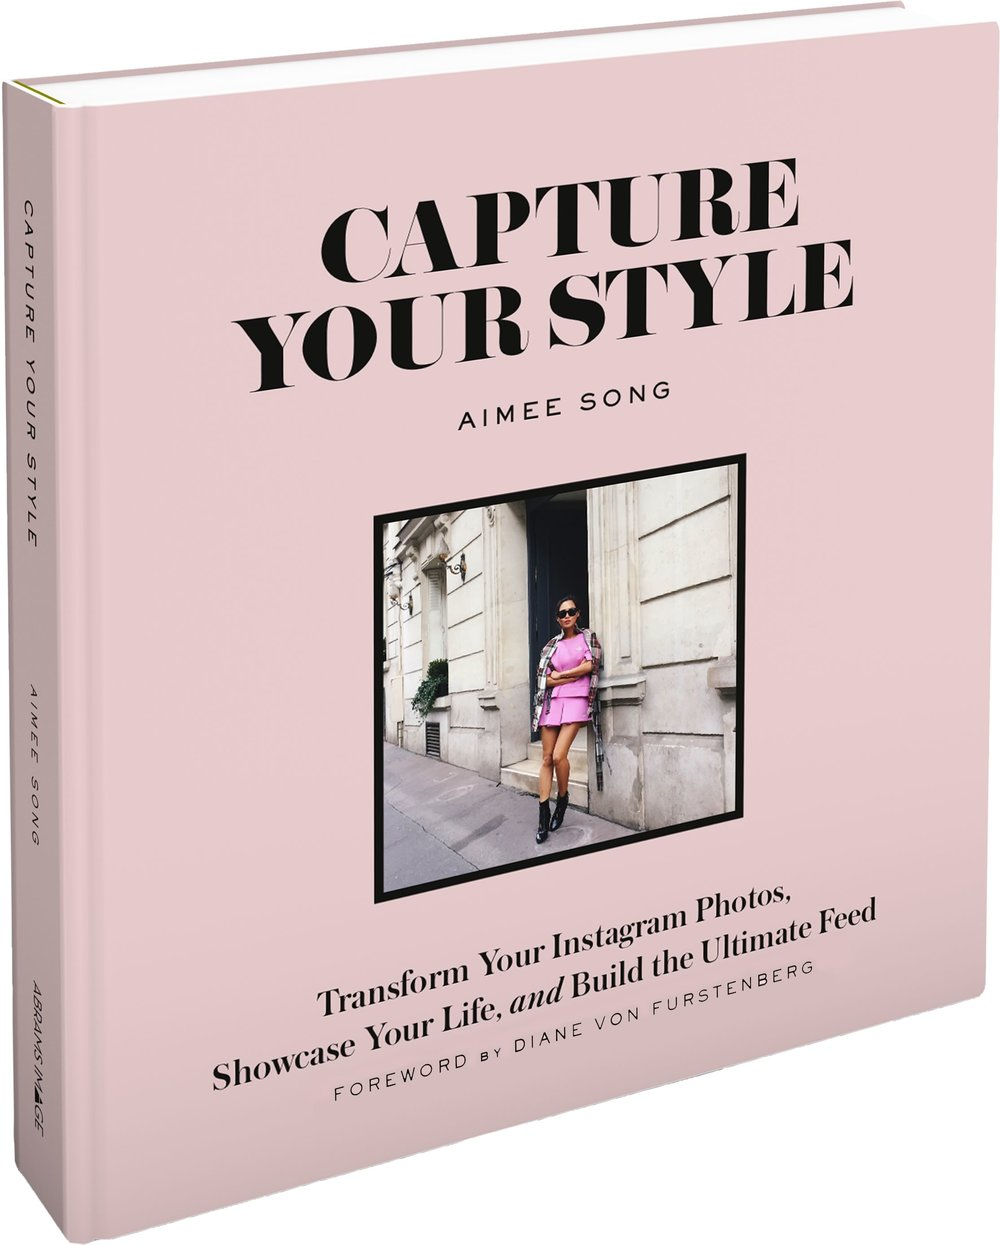 CaptureYourStyle_book.jpg